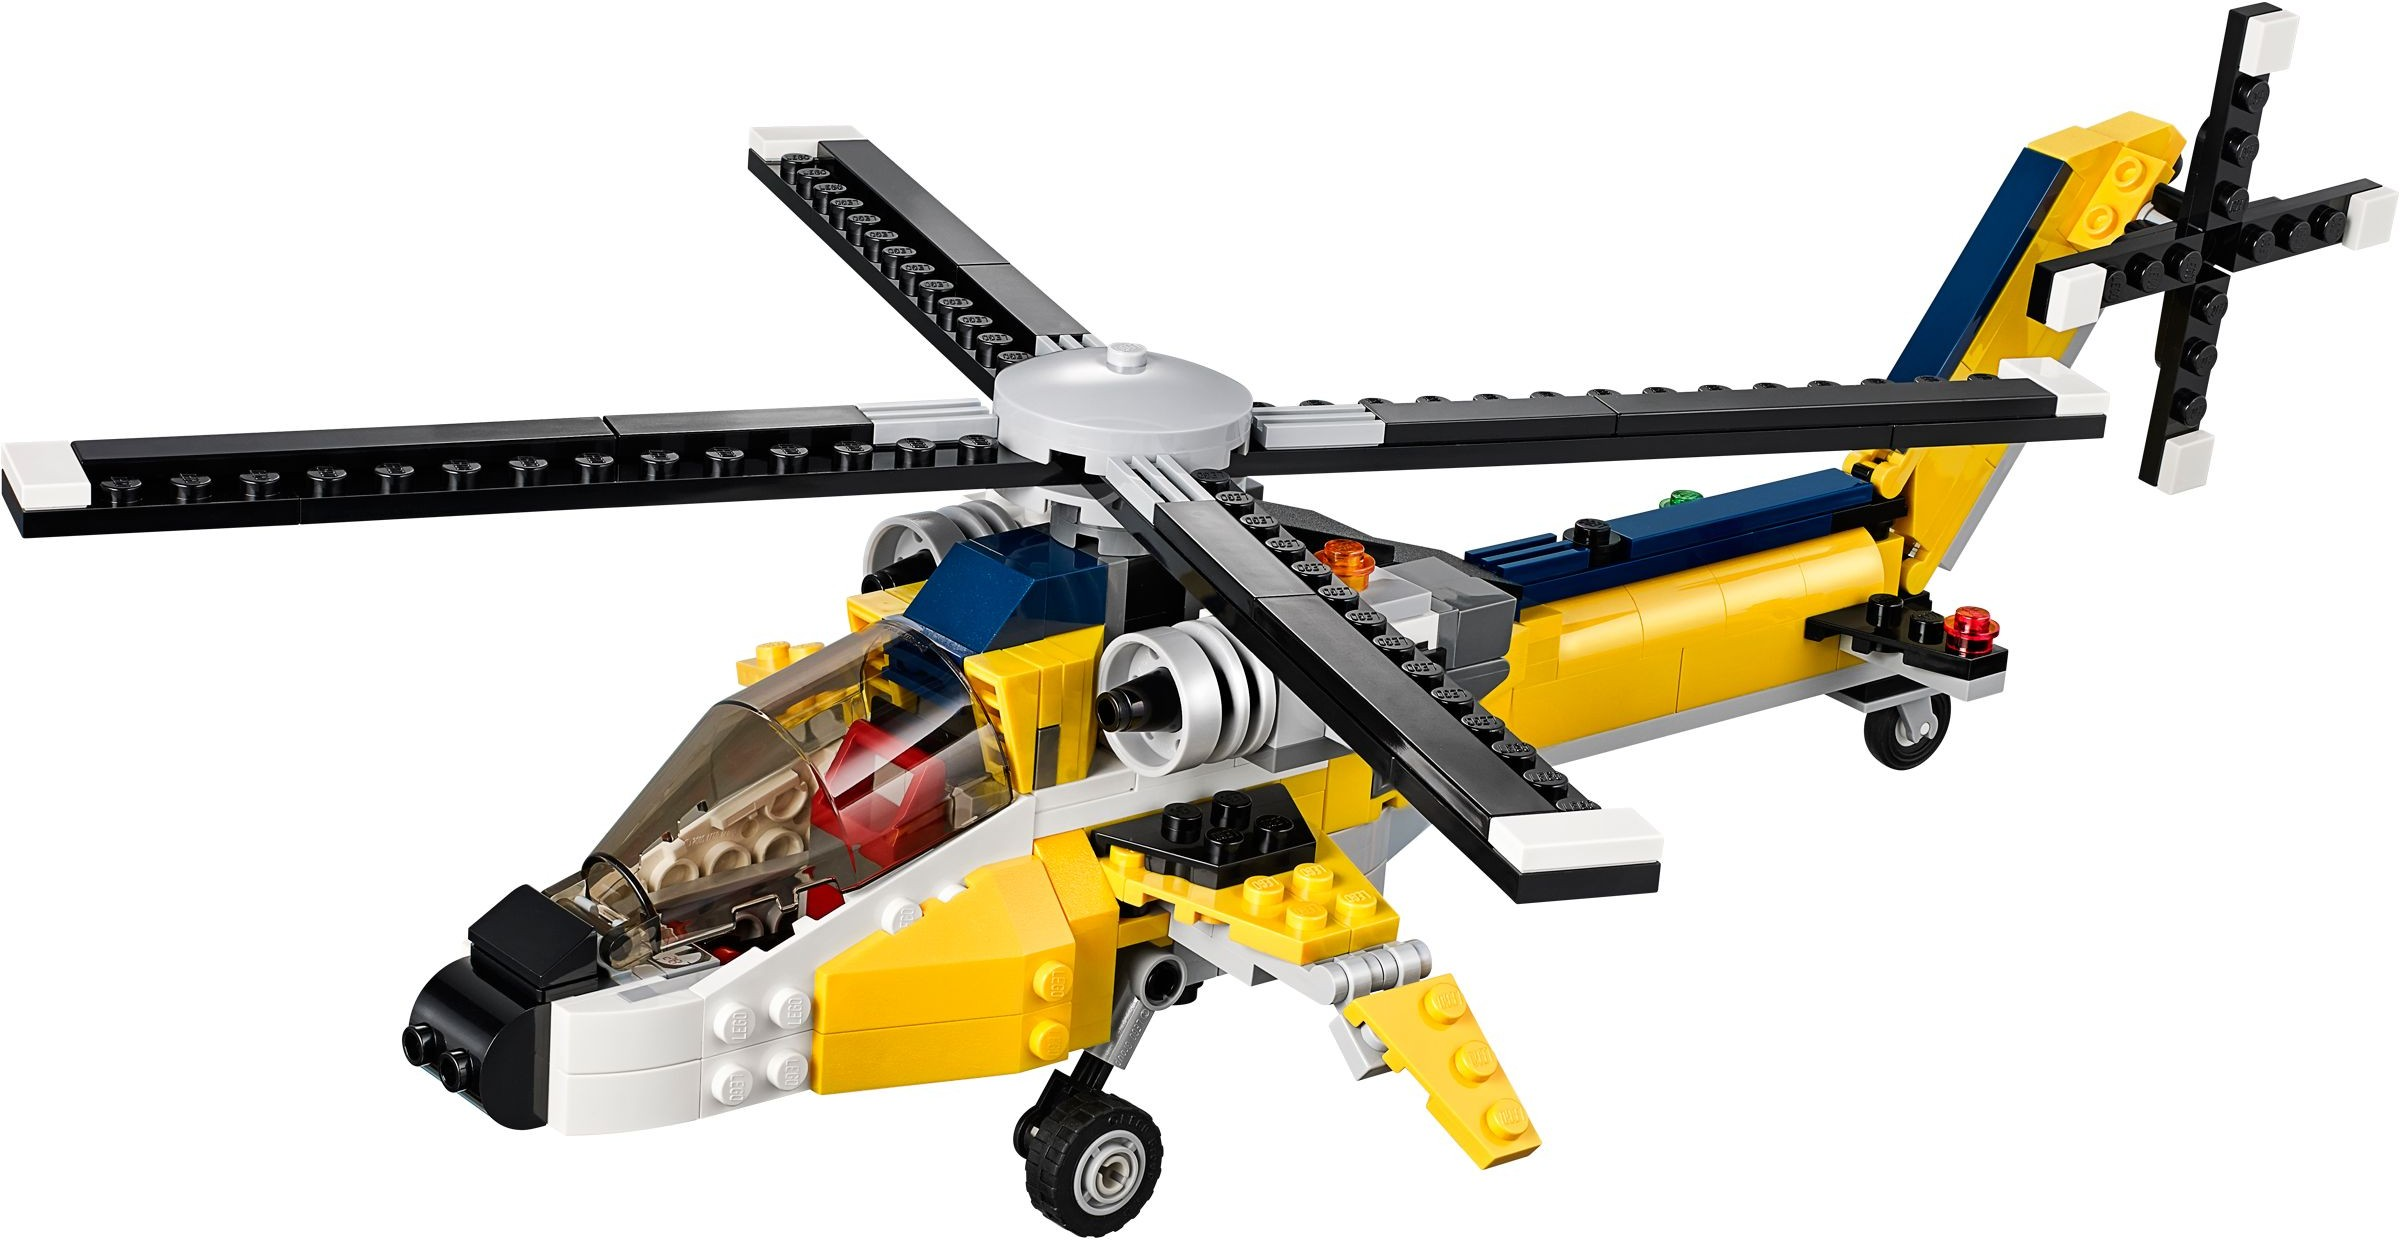 technic helicopter 9396 with Year 2014 on Rescue Helicopter 8068 also Gallery furthermore Lego Vehicles Collection Set 5004190 in addition Lego Helicopter Set 9396 Instructions moreover The Best 10 Lego Set Of All Time.